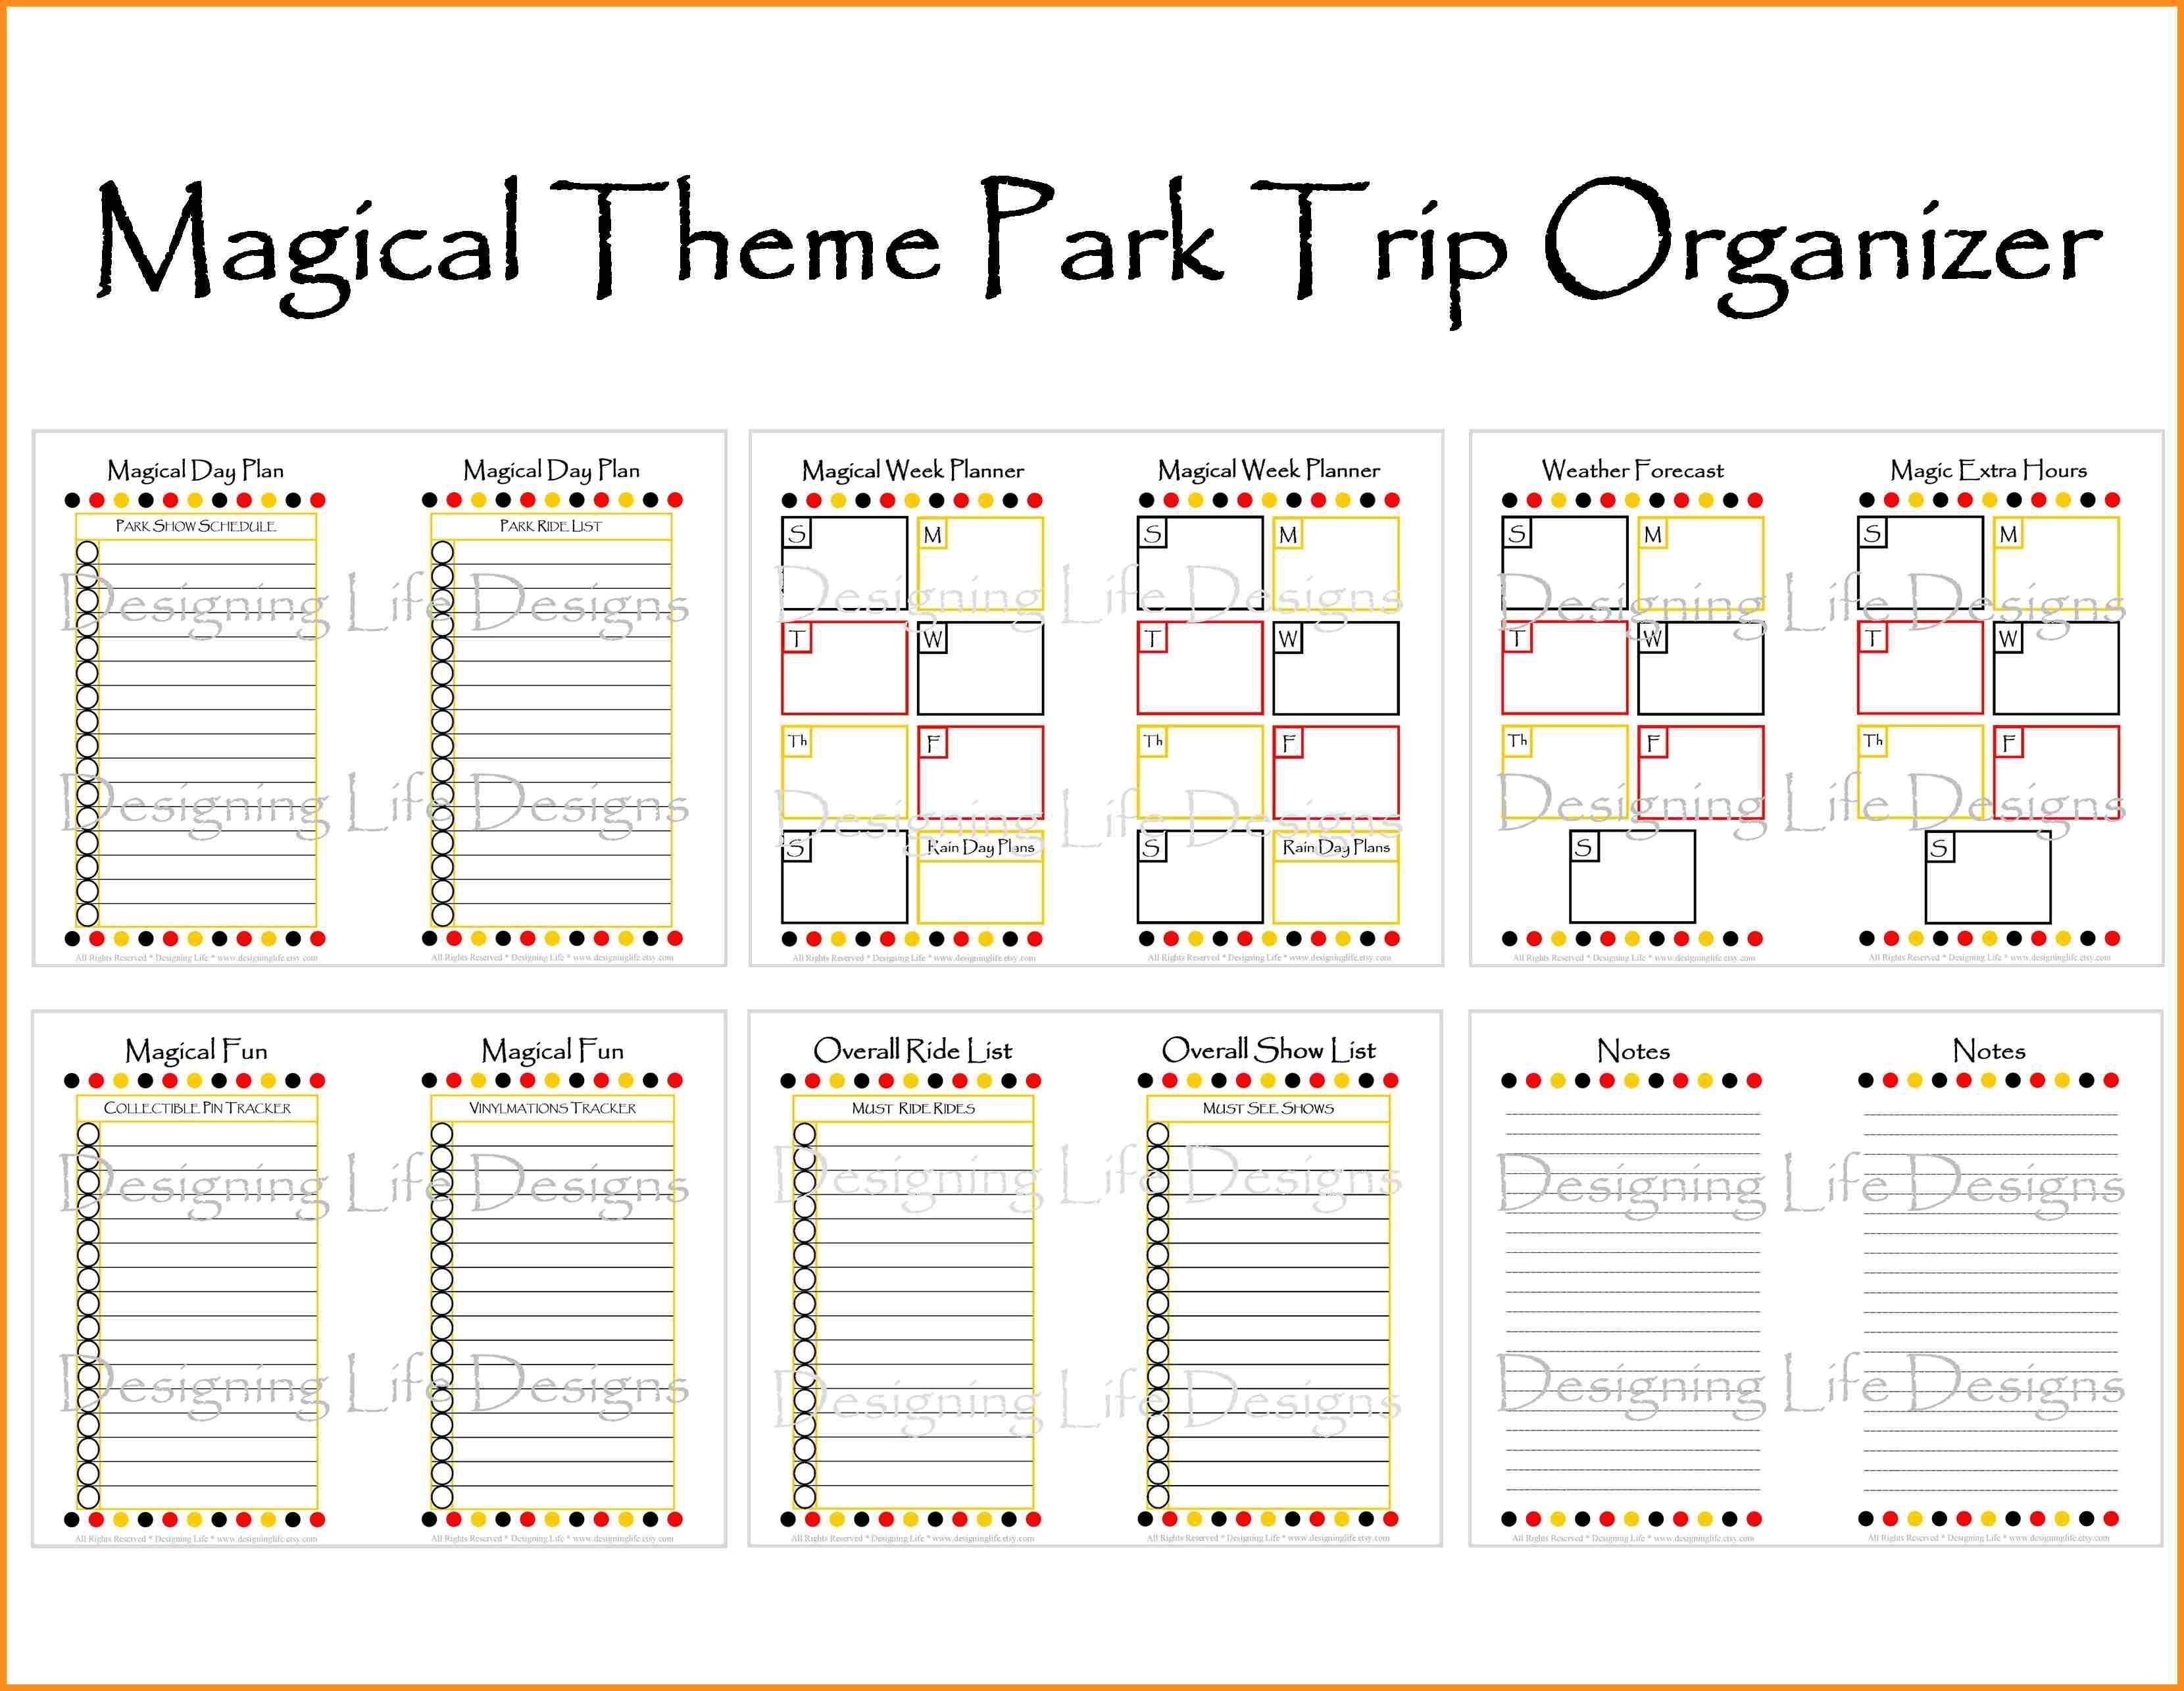 Image Result For Disney World Itinerary Template | Disney-Template For Wdw Itinerary